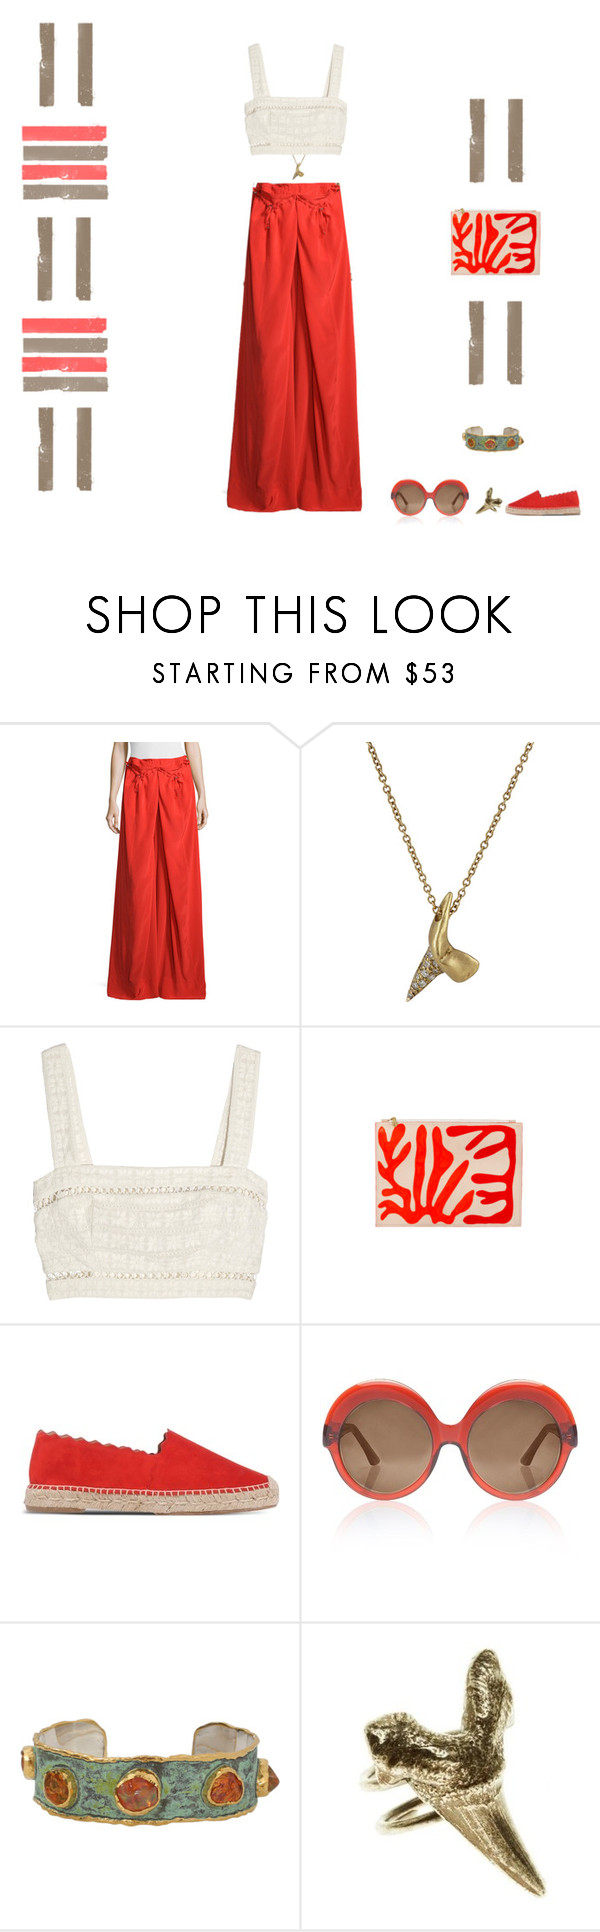 """""""Coral Gables"""" by southernreef ❤ liked on Polyvore featuring KaufmanFranco, Finn, Zimmermann, Chloé, Cutler and Gross, Victor Velyan and Luv Aj"""